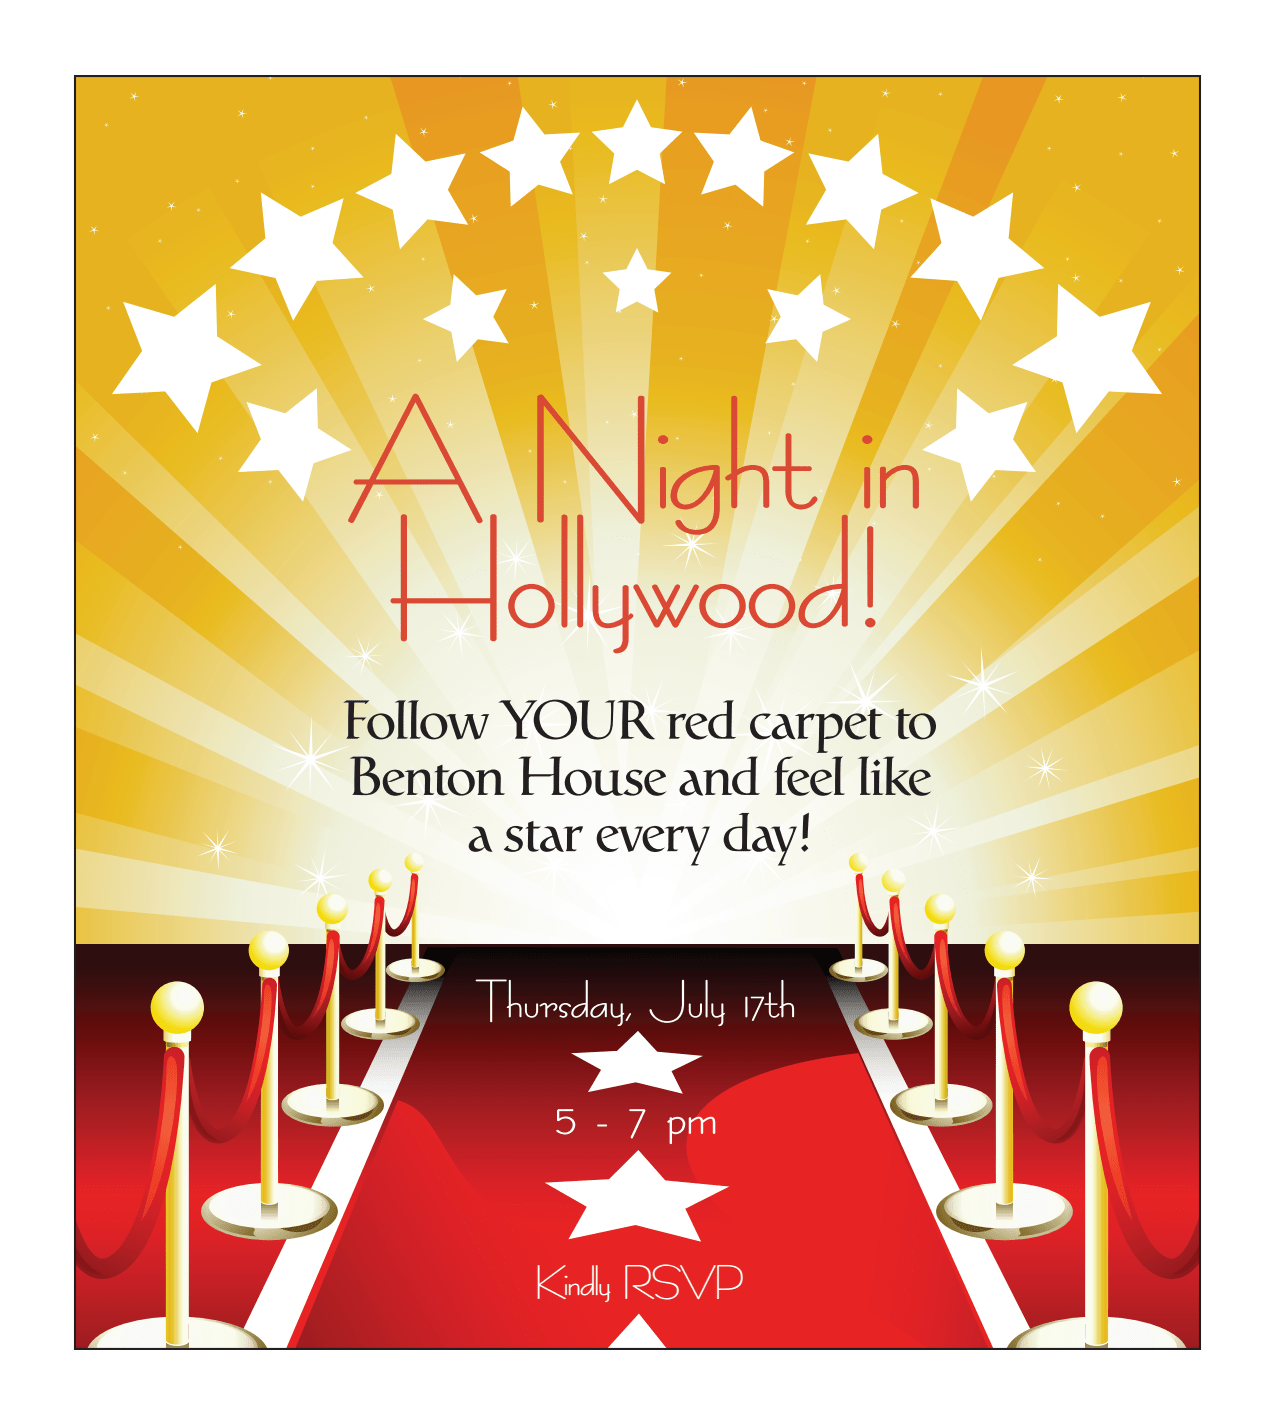 A Night in Hollywood - activities at Benton Village of Stockbridge in Stockbridge, GA